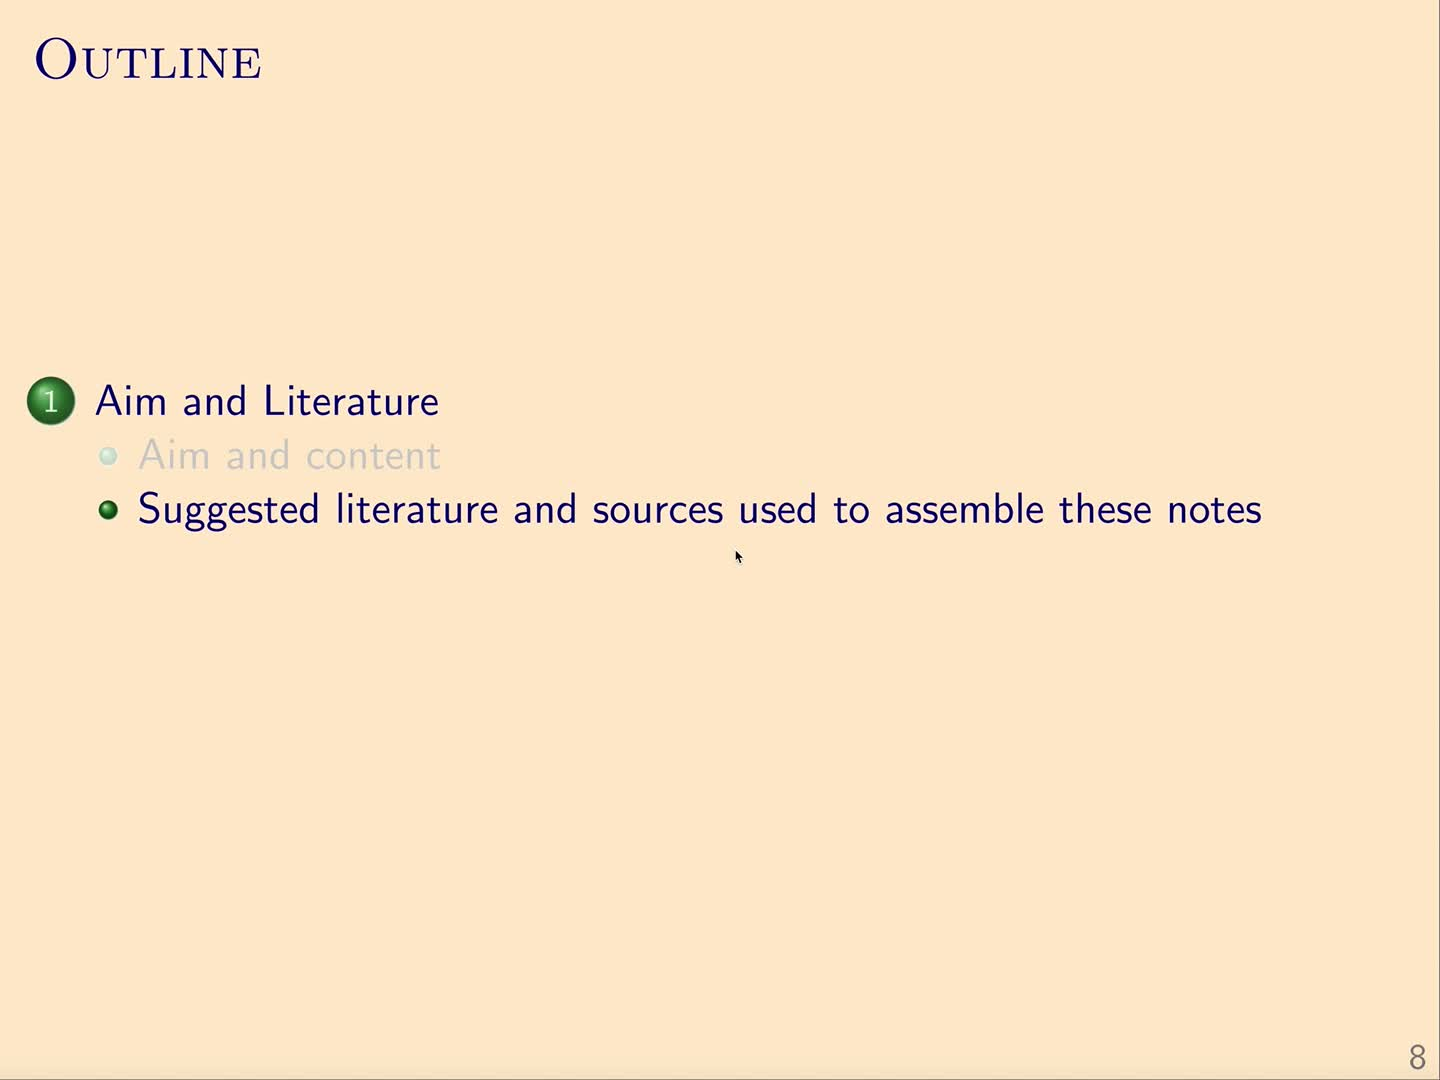 QG I: 0.2 - Suggested literature